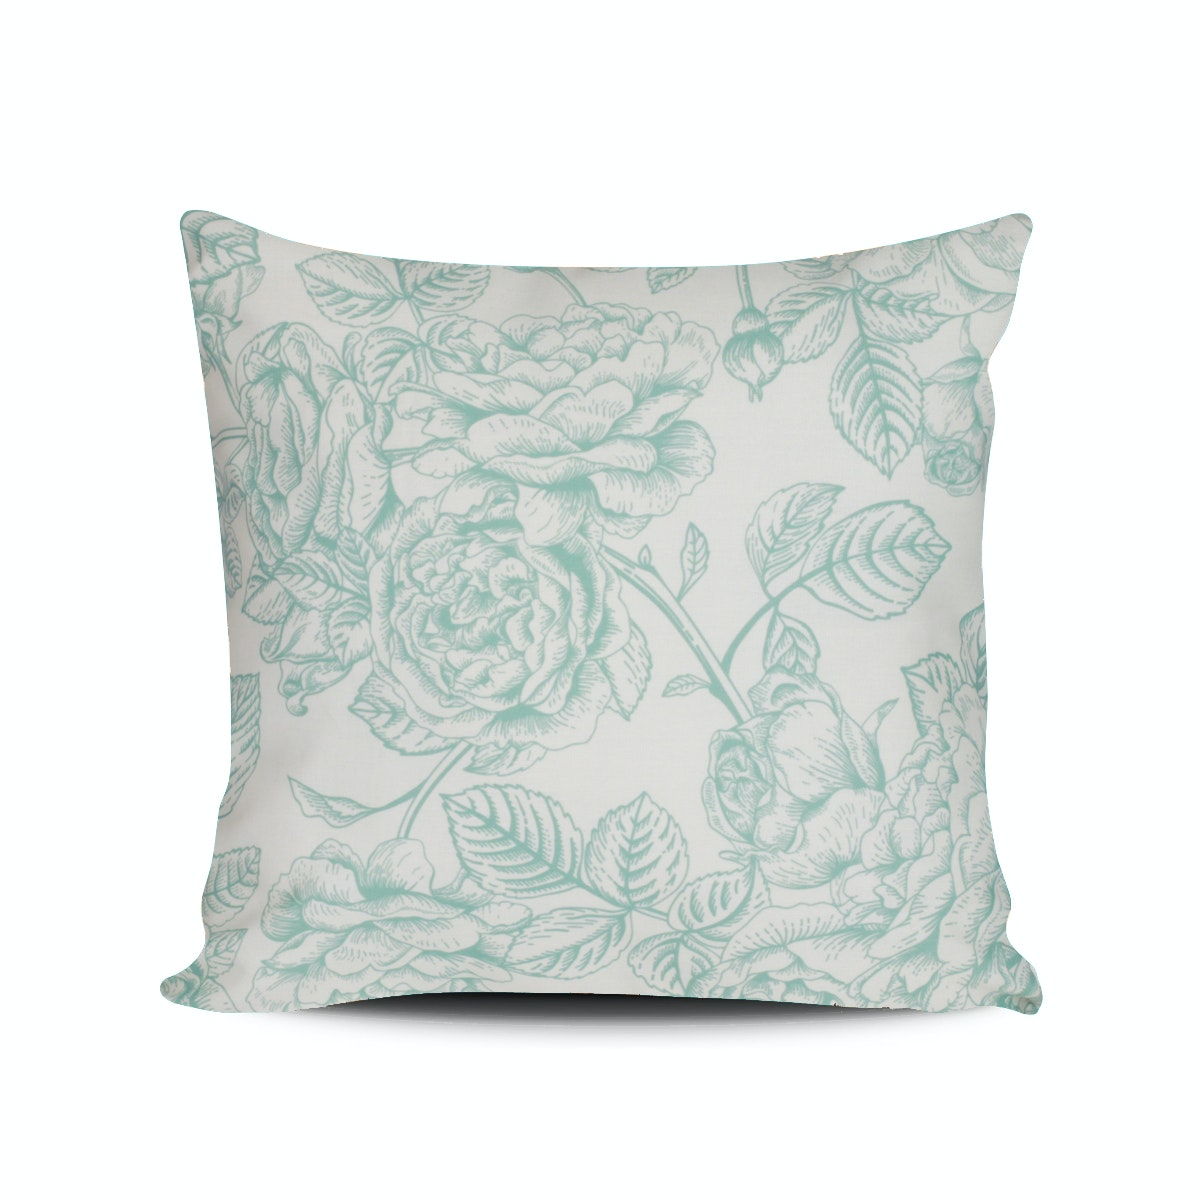 Pintal Home English Garden Sky Cushion Cover 45X45